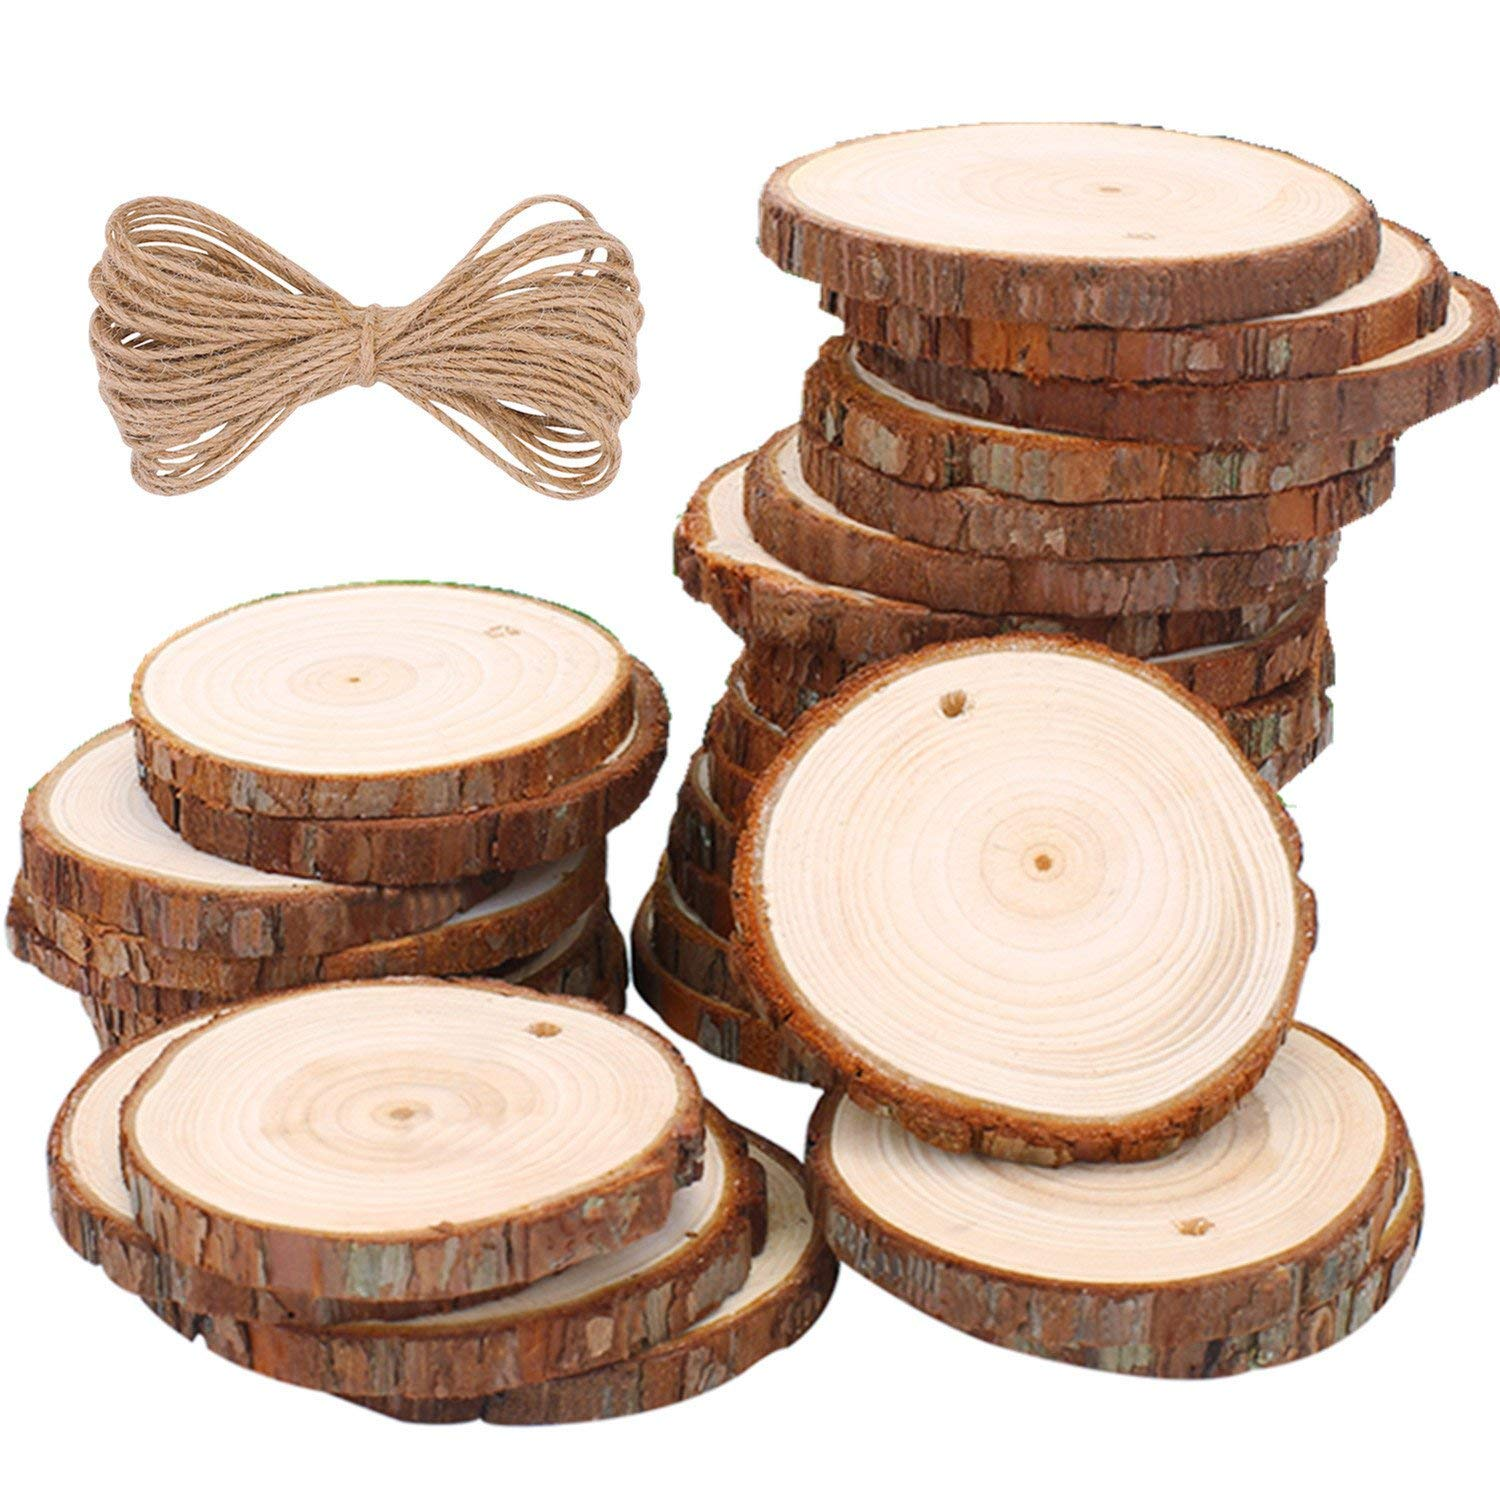 """Loveself Natural Wood Slices 30 Pcs 2.37""""-2.75"""" Round Discs Unfinished Predrilled Wooden Circles for Centerpieces Coasters Christmas Ornaments Decorations (30 Pcs 2.37""""-2.75"""") (Wood Silces 30 Pcs)"""